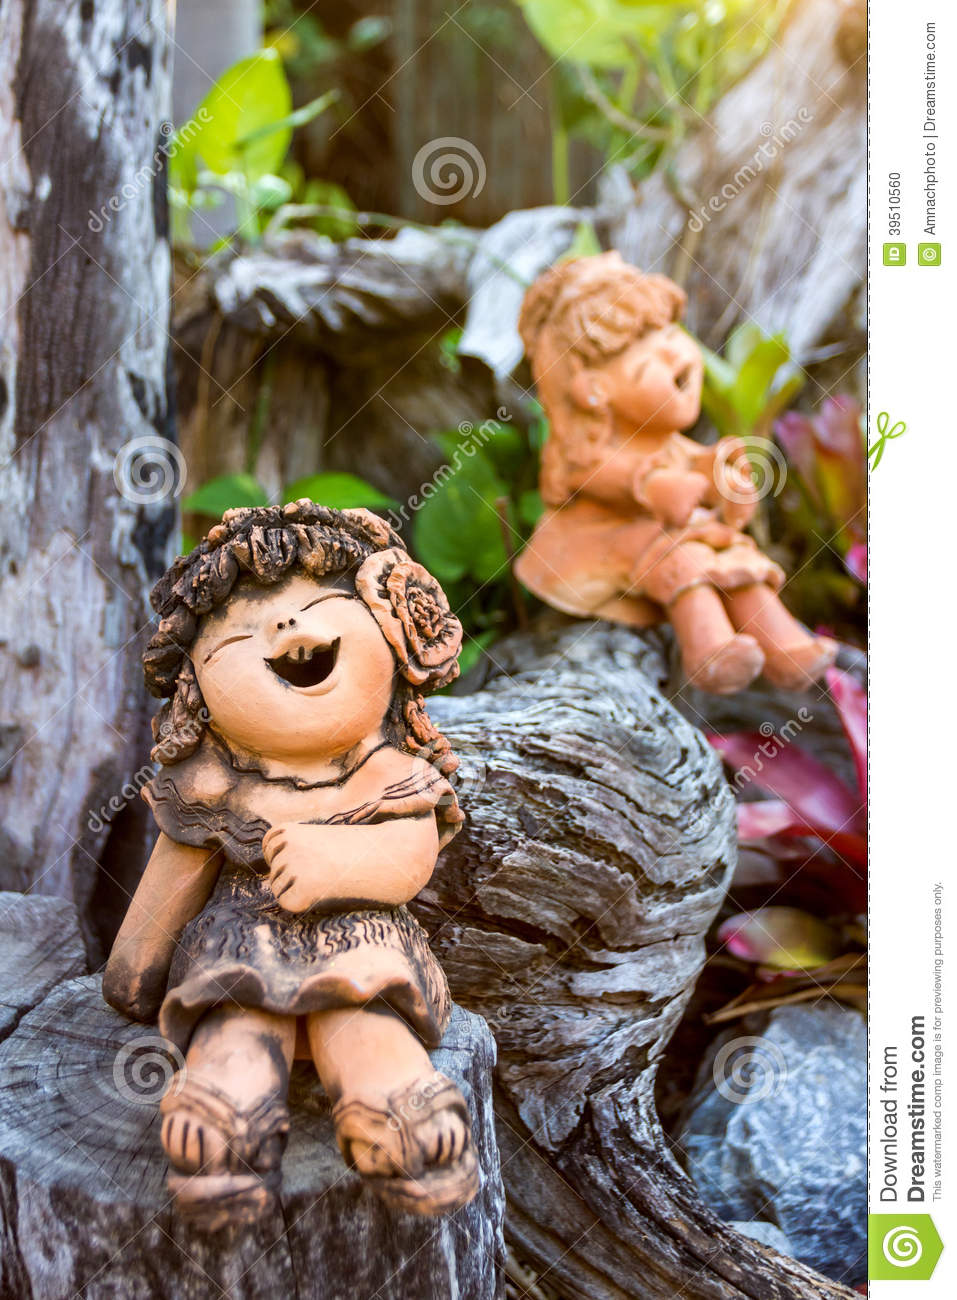 Smiley clay doll on wood in the park.